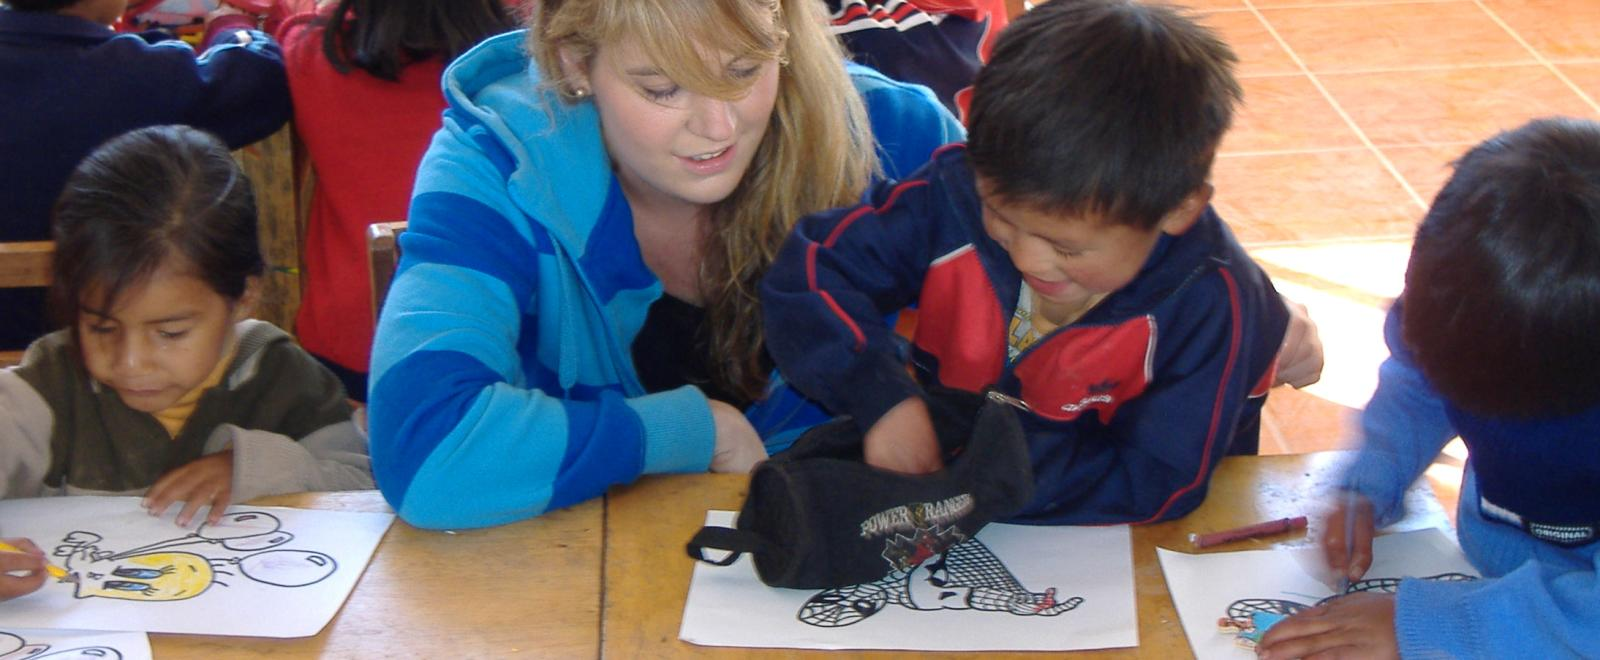 Projects Abroad volunteer works with children on Childhood Development project in Peru